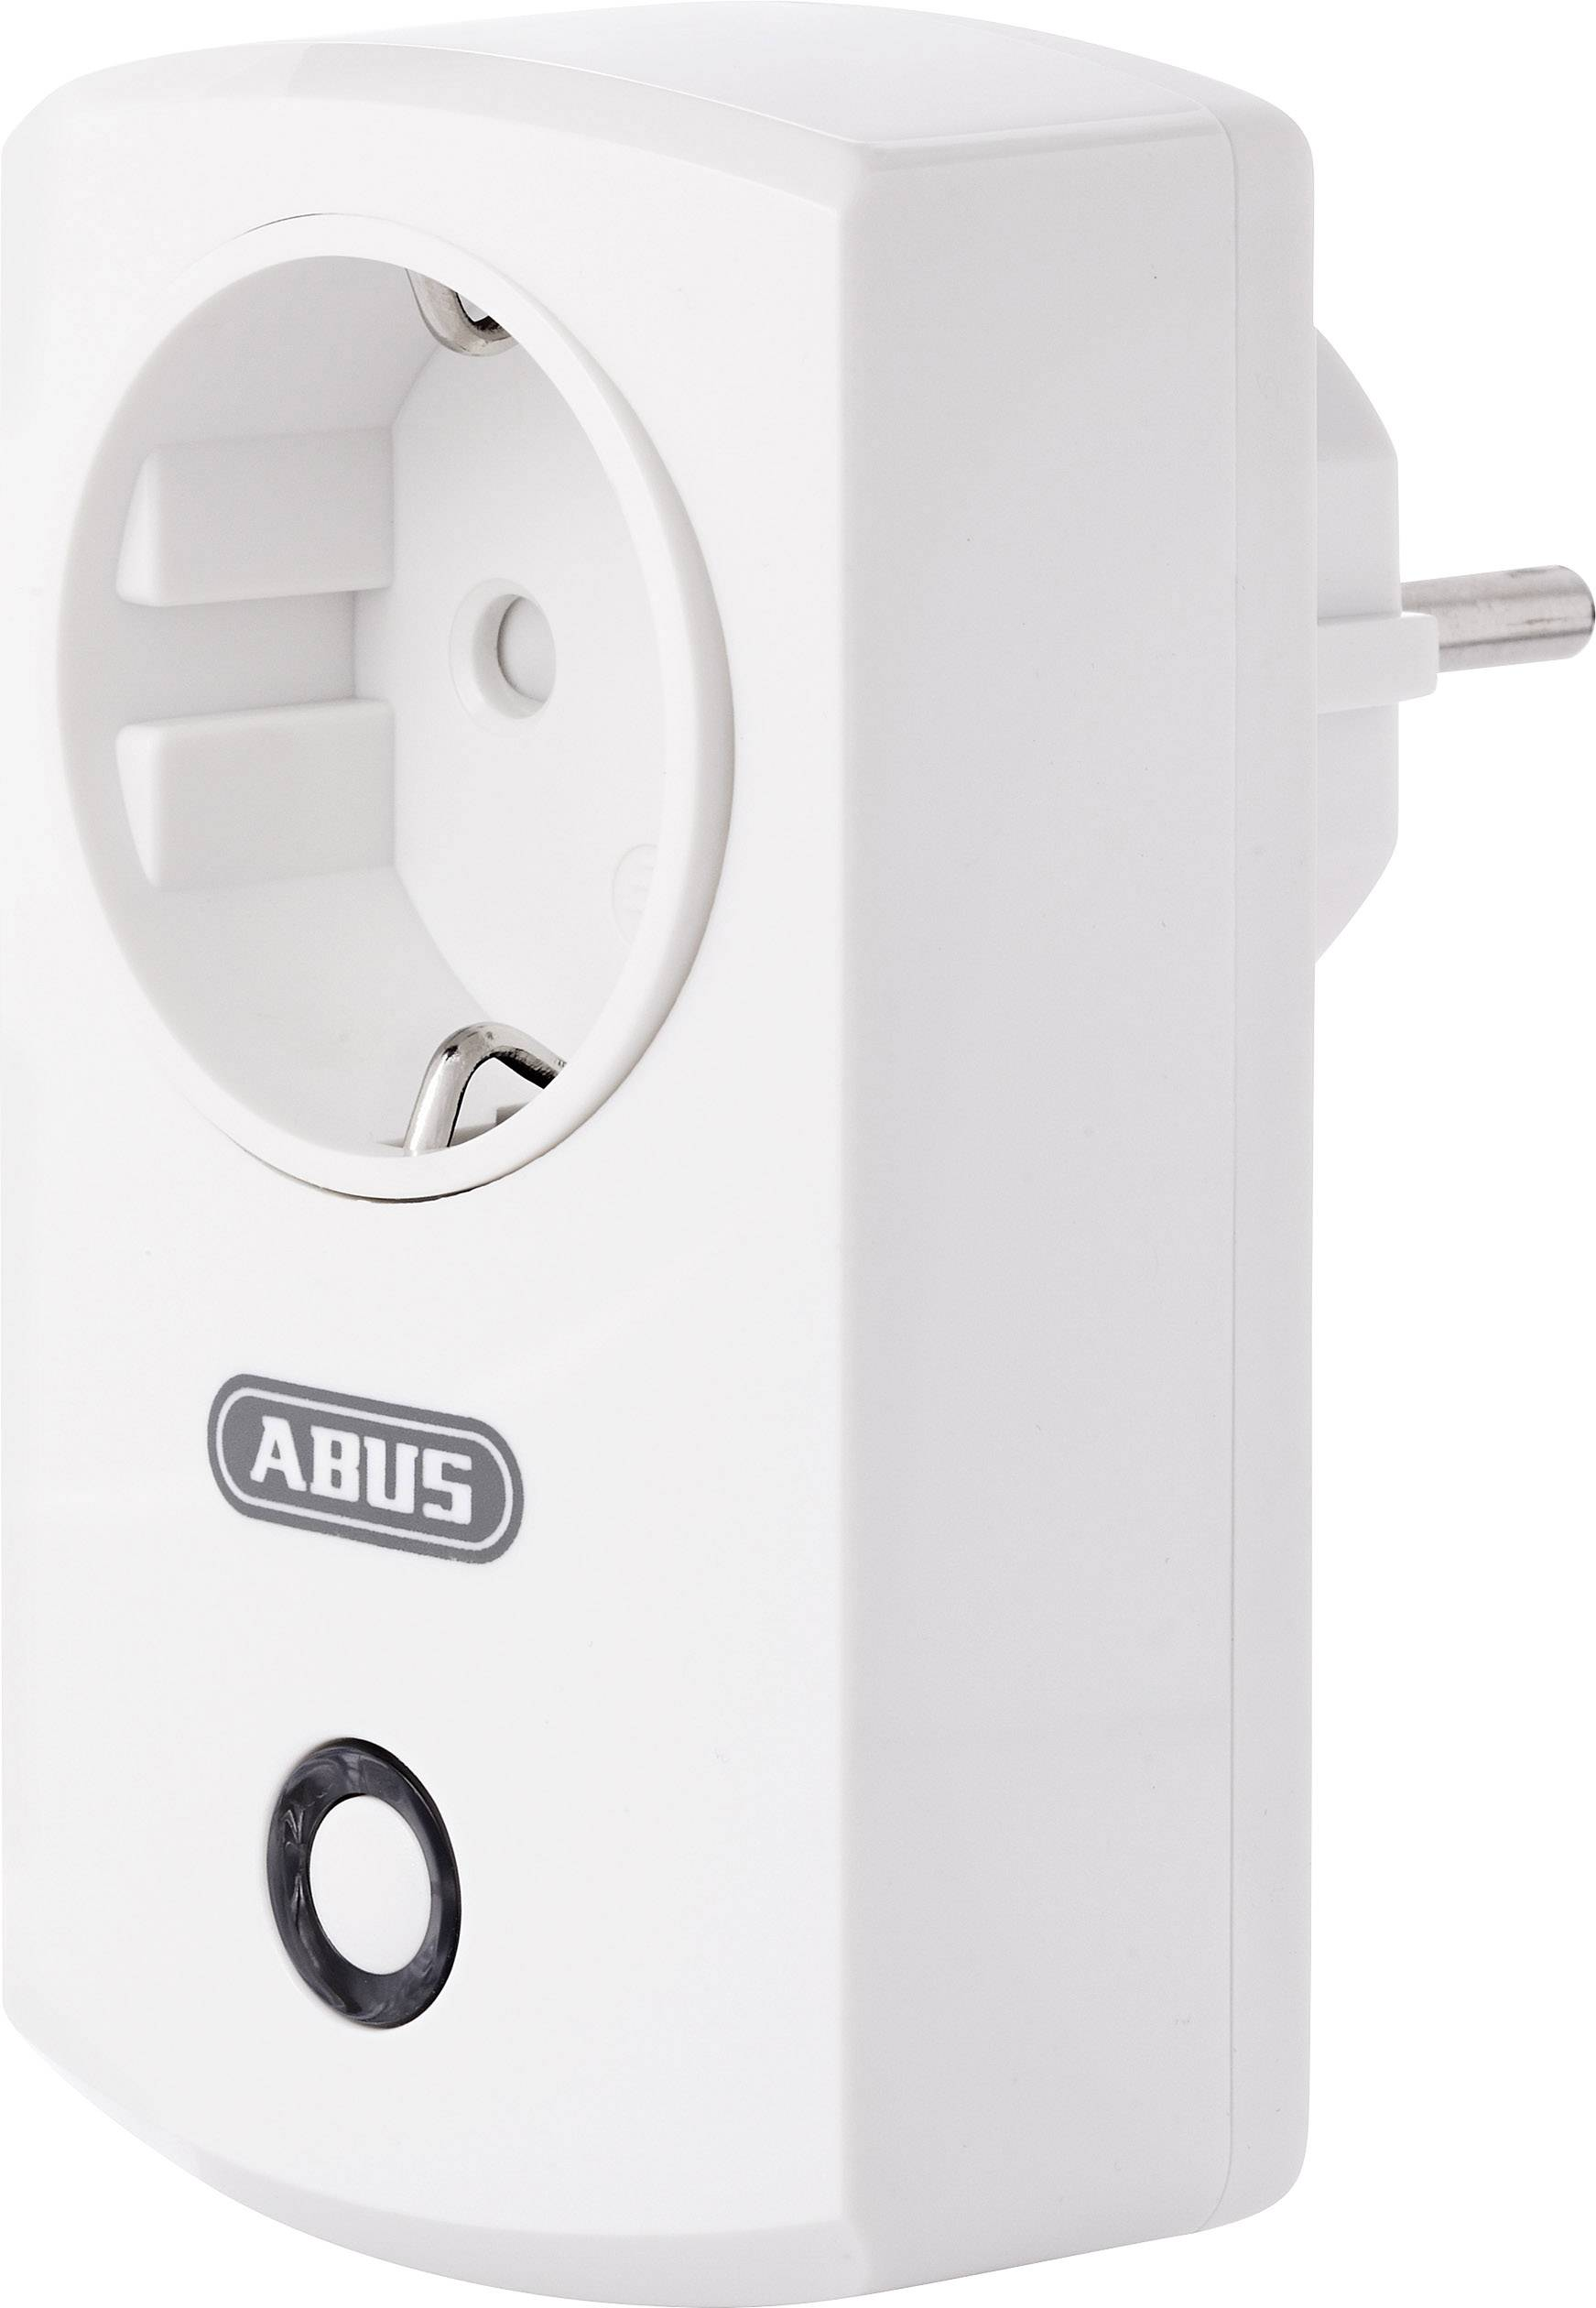 Smart Steckdose Fuha35000a Funk Steckdose Abus Smartvest Abus Smart Security World